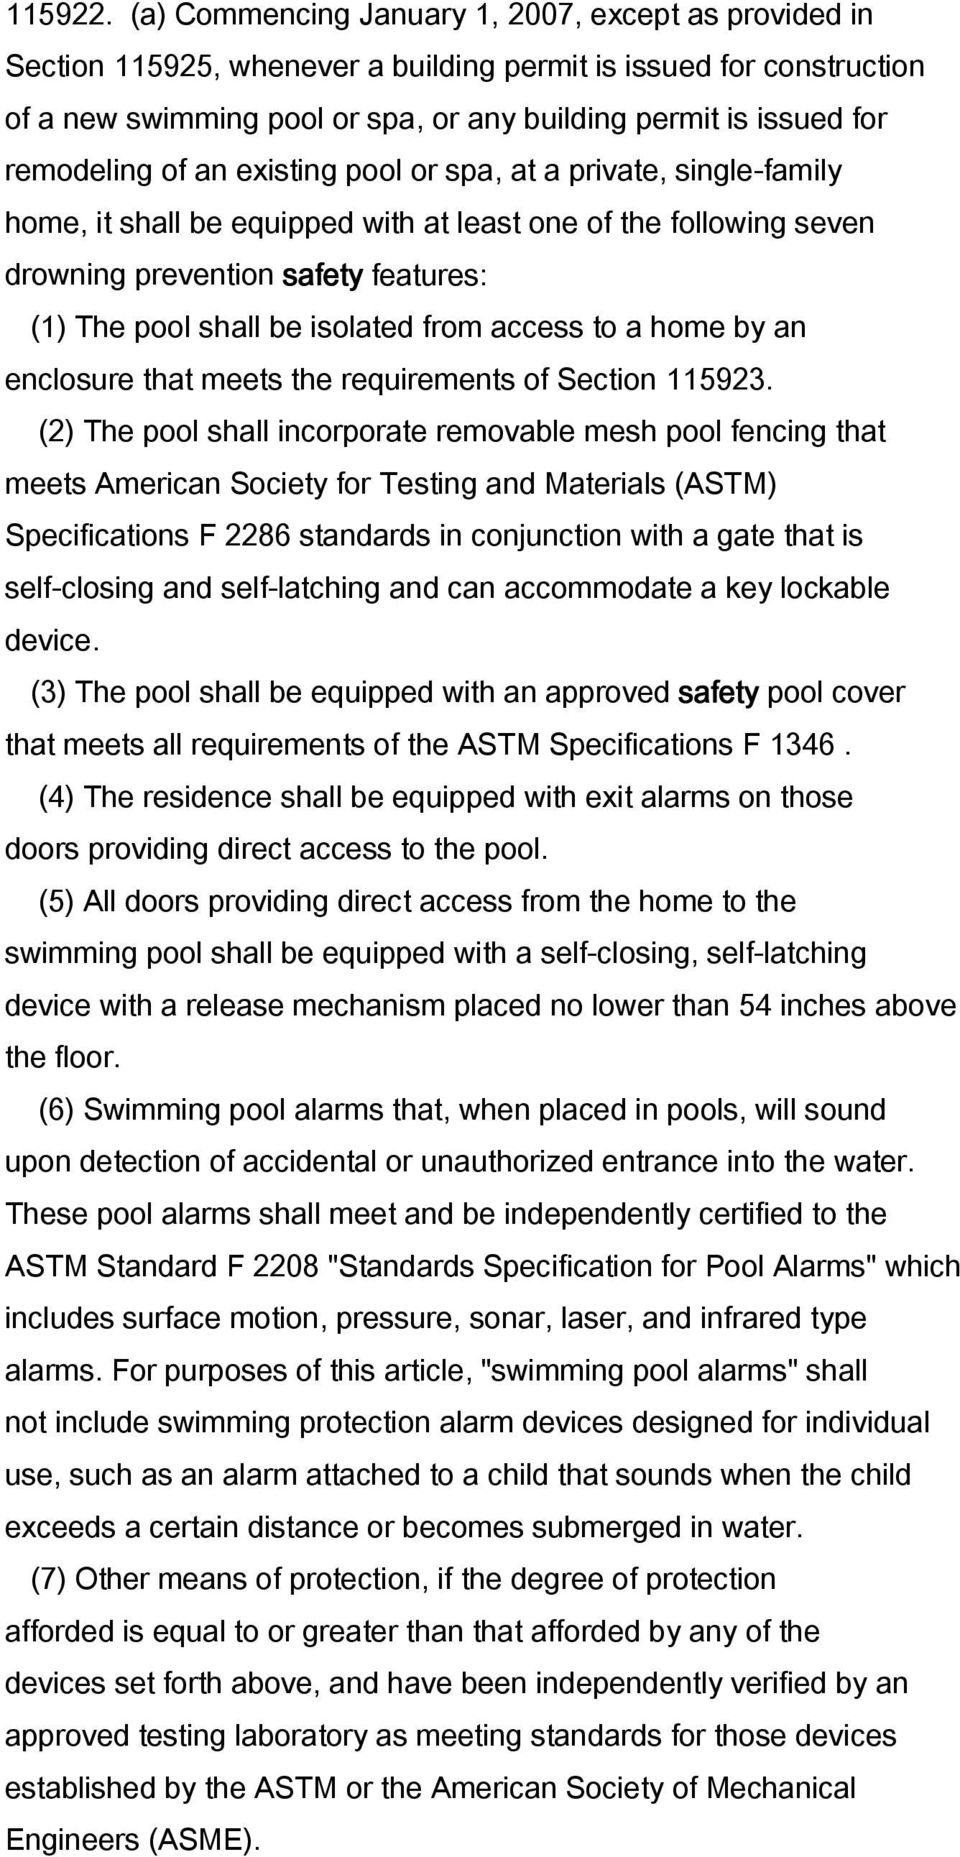 remodeling of an existing pool or spa, at a private, single-family home, it shall be equipped with at least one of the following seven drowning prevention safety features: (1) The pool shall be